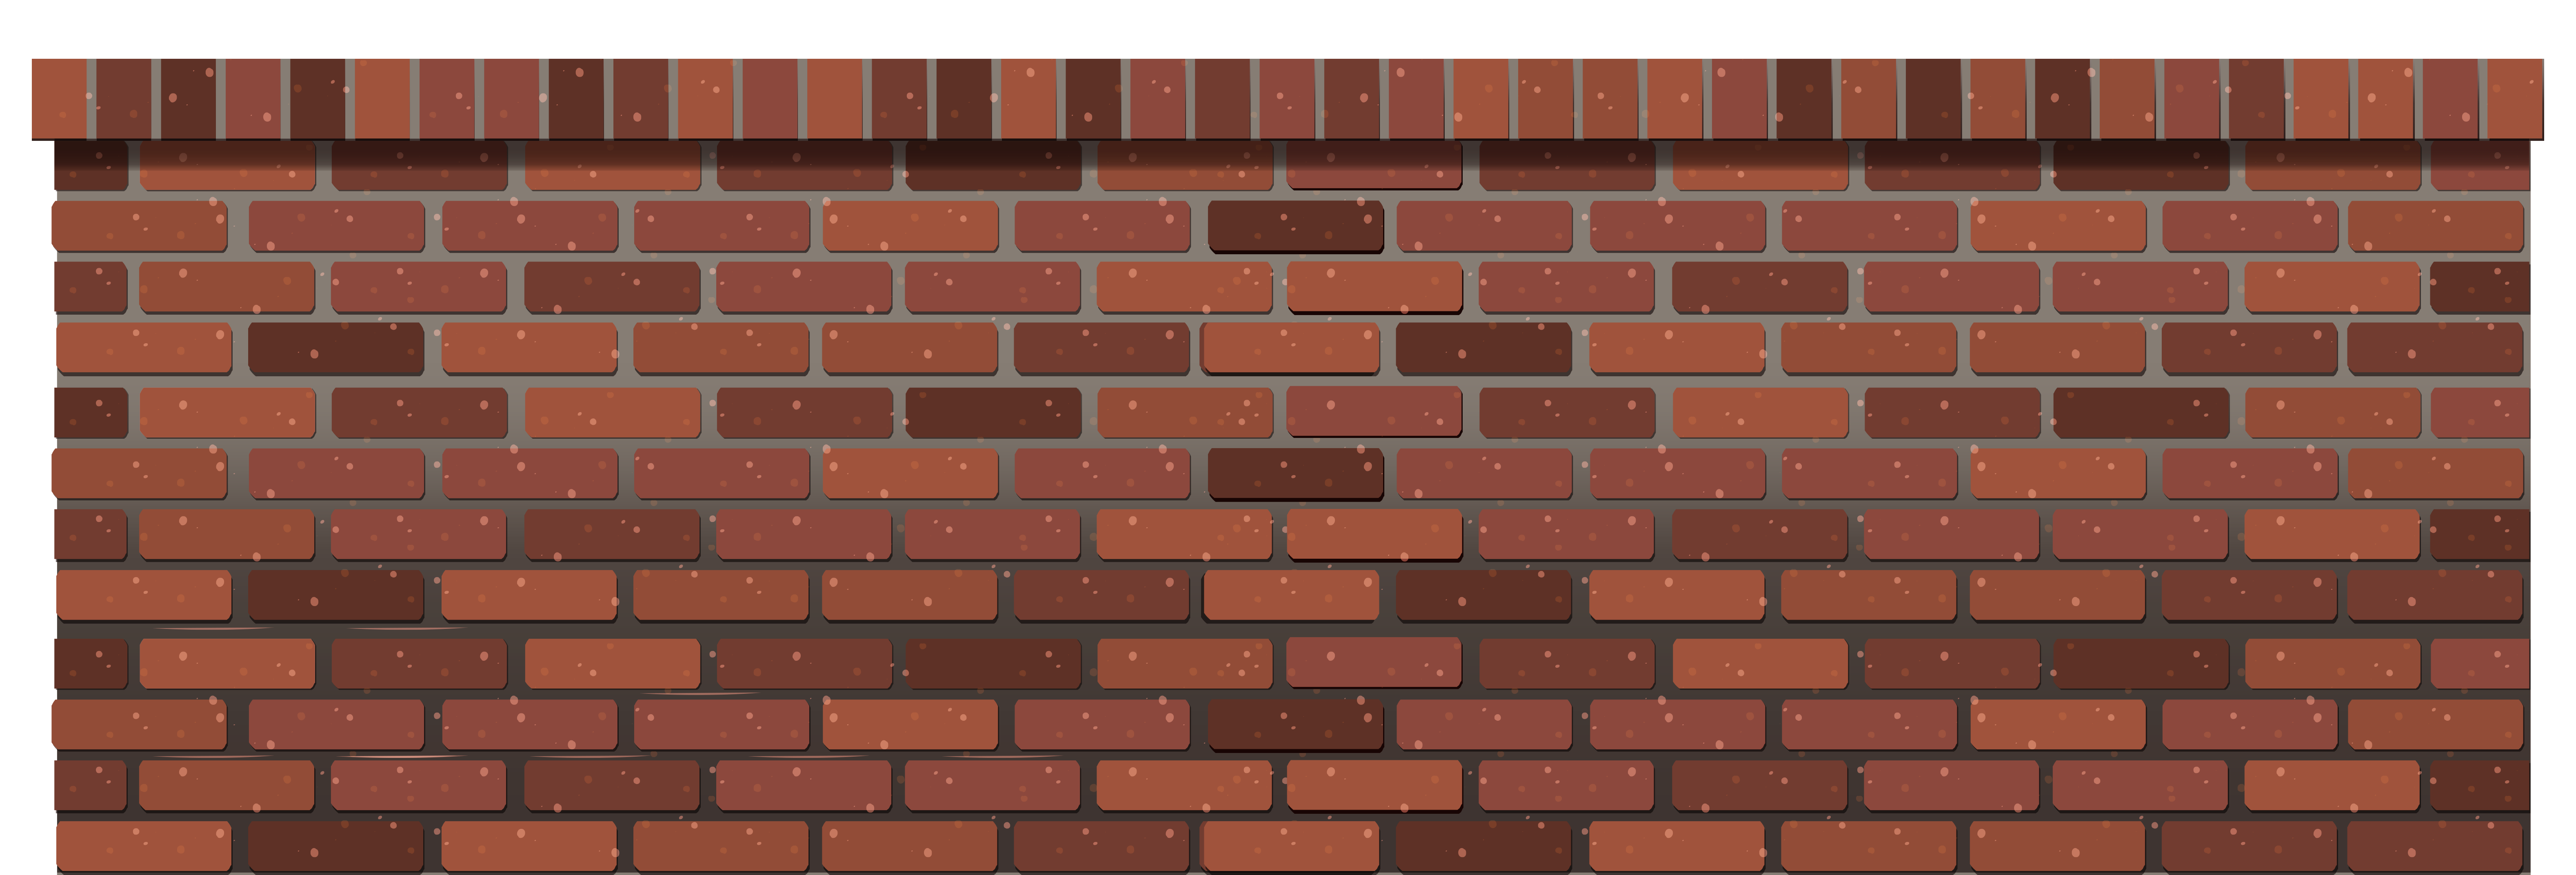 Lego clipart brick wall Icons image png Free Lego